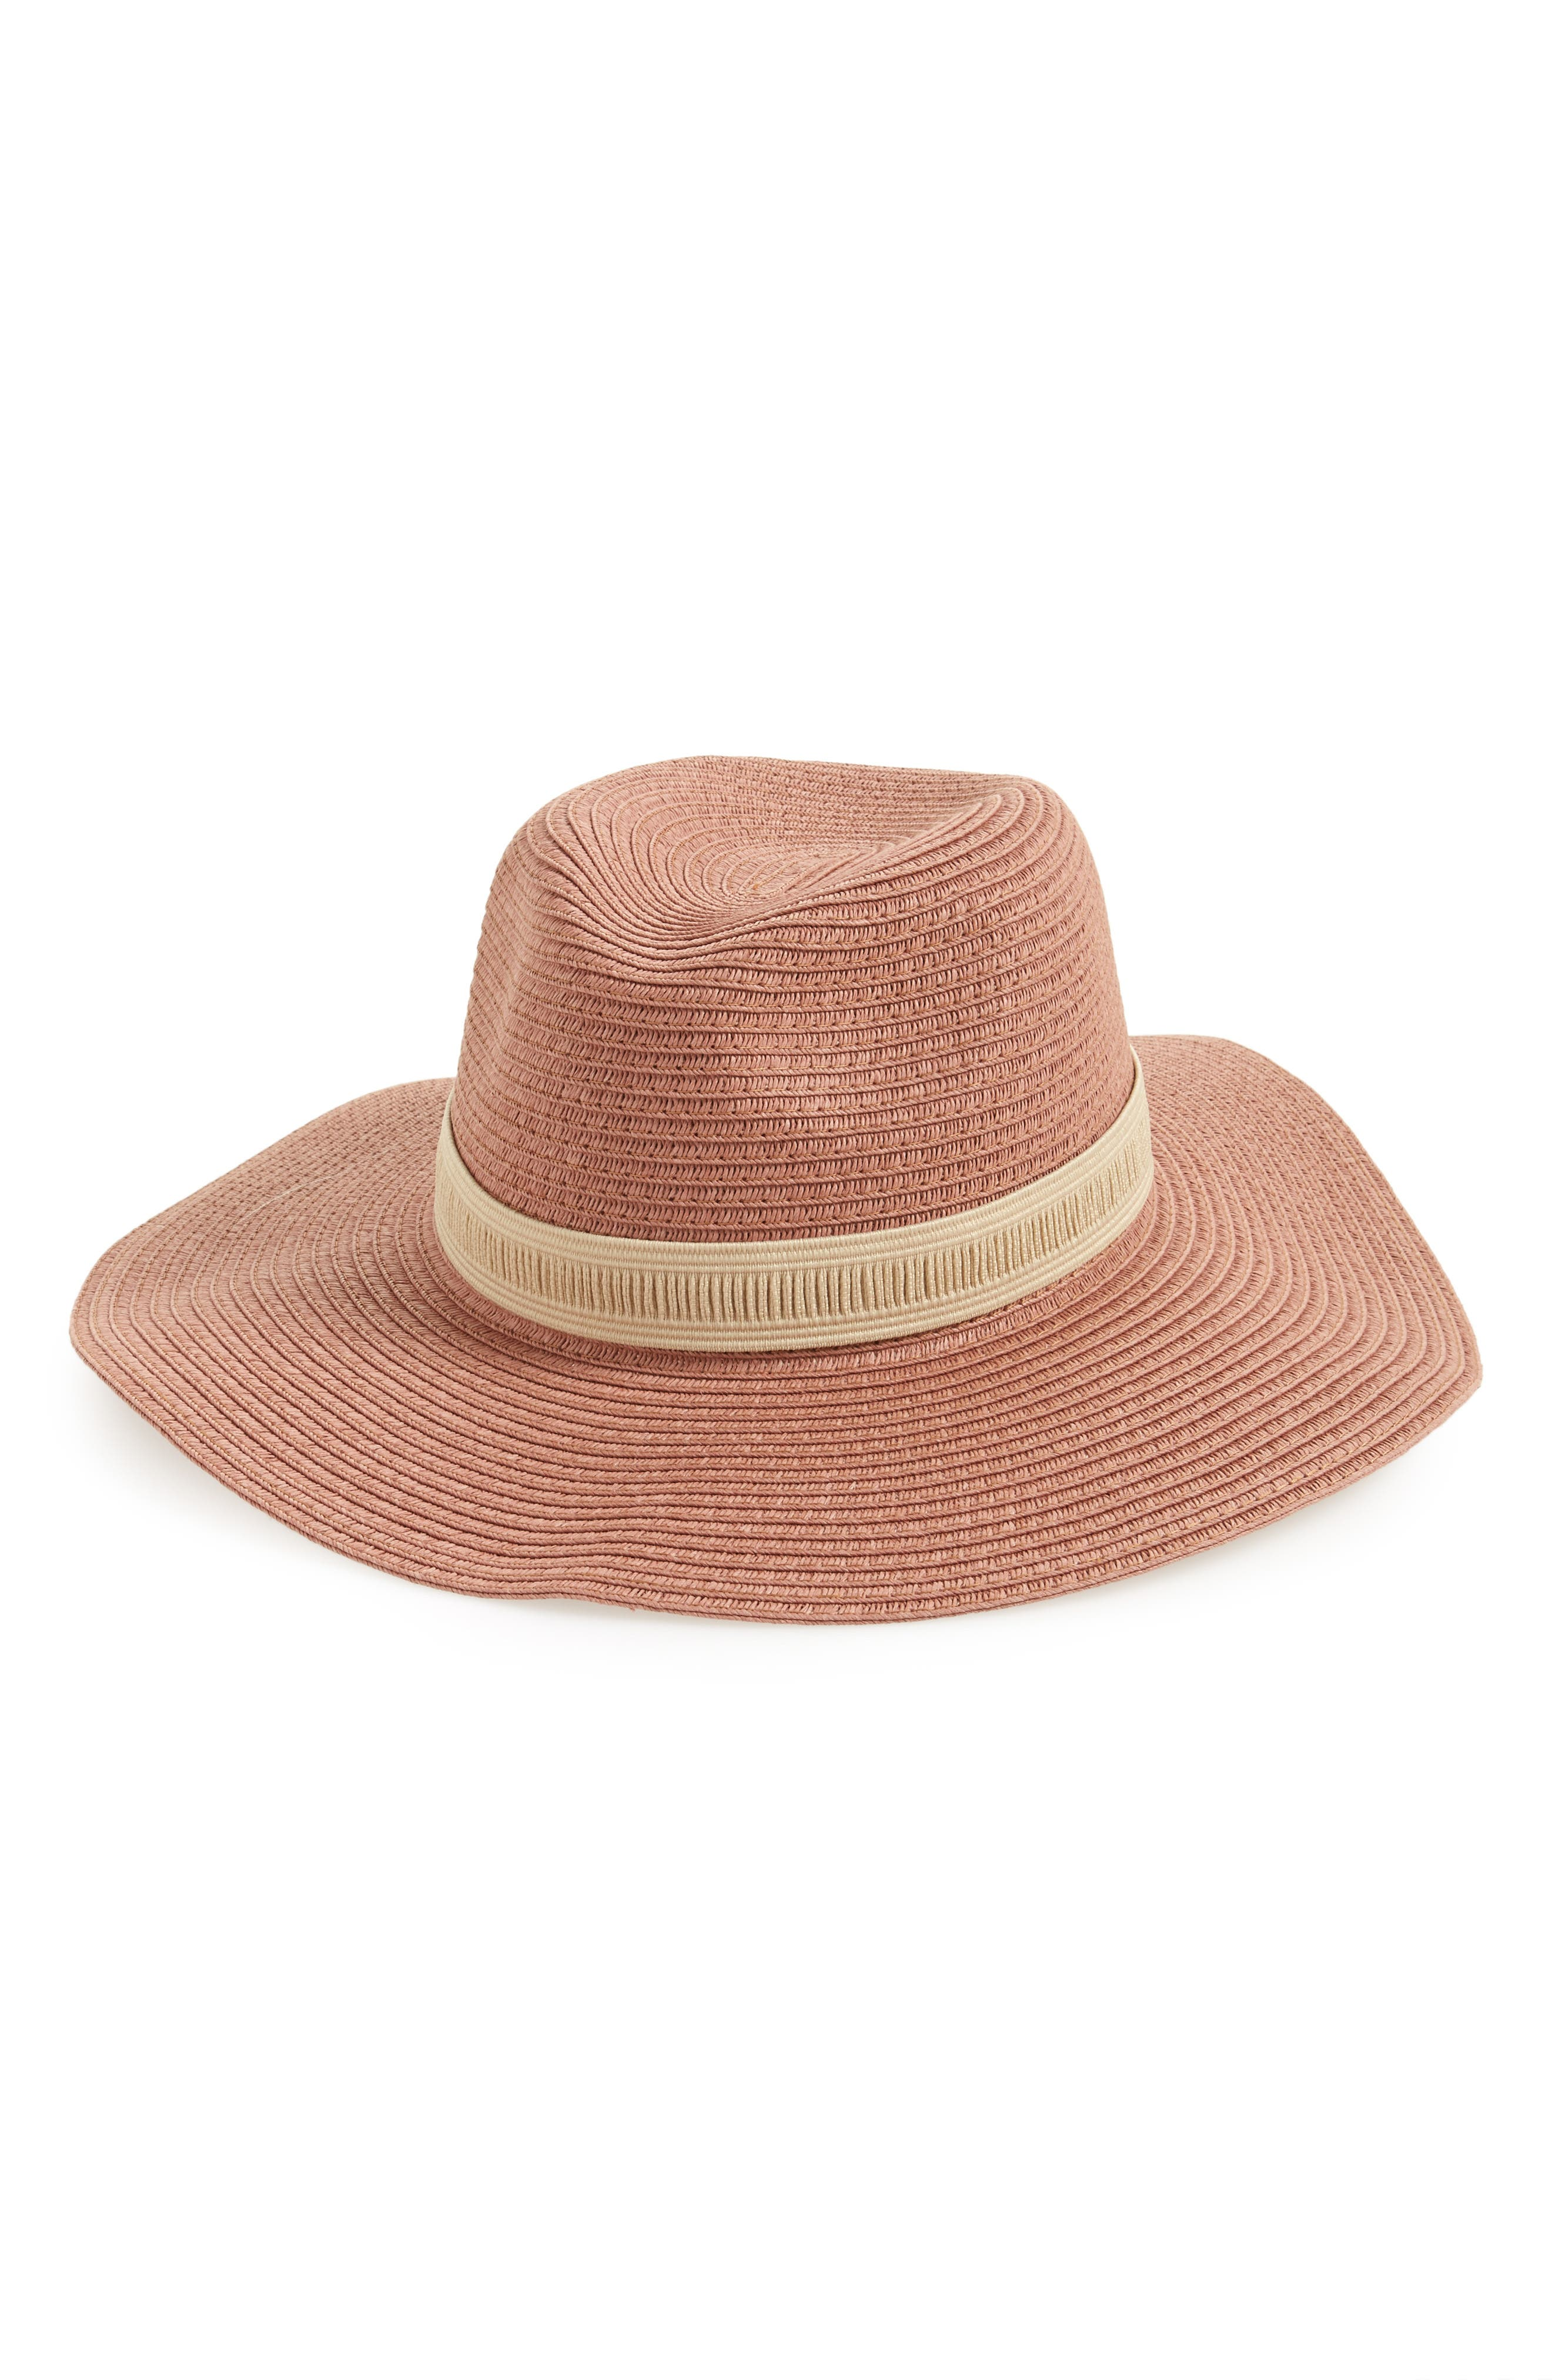 Mesa Packable Straw Hat,                         Main,                         color, Dried Coral Straw